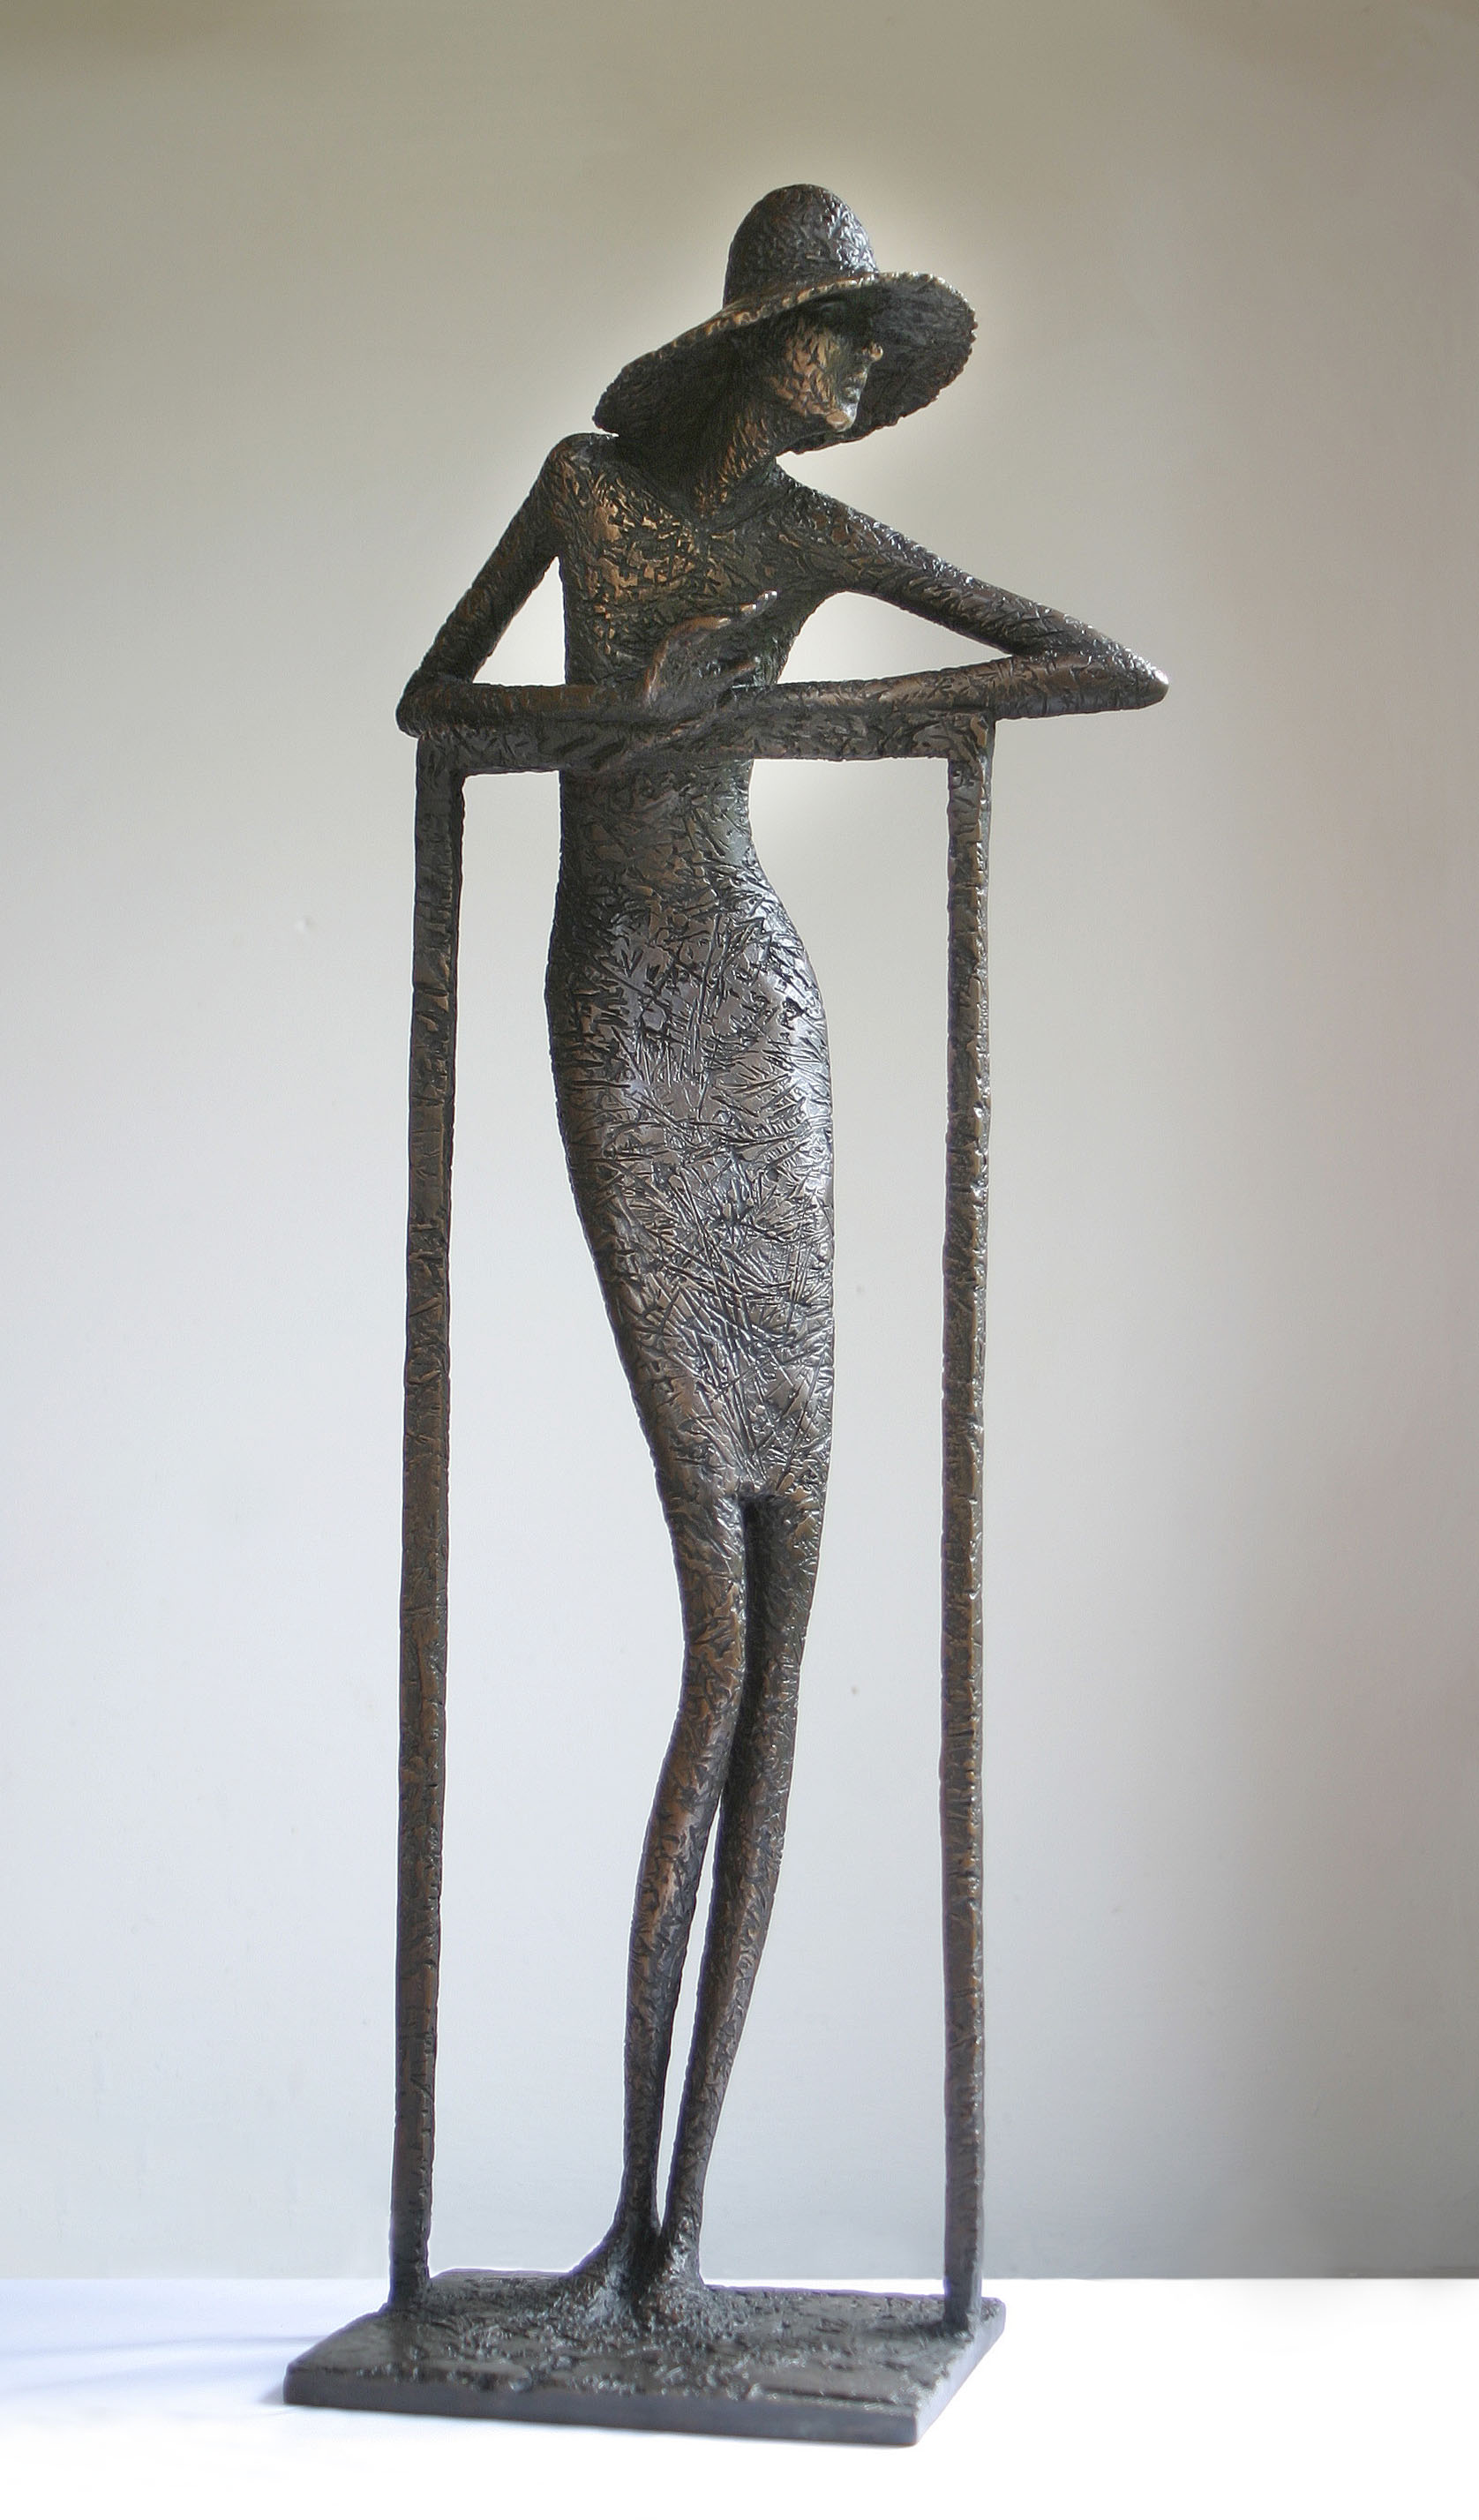 'Parting', Bronze, edt 4 of 5, 60cm x 25cm x 15cm